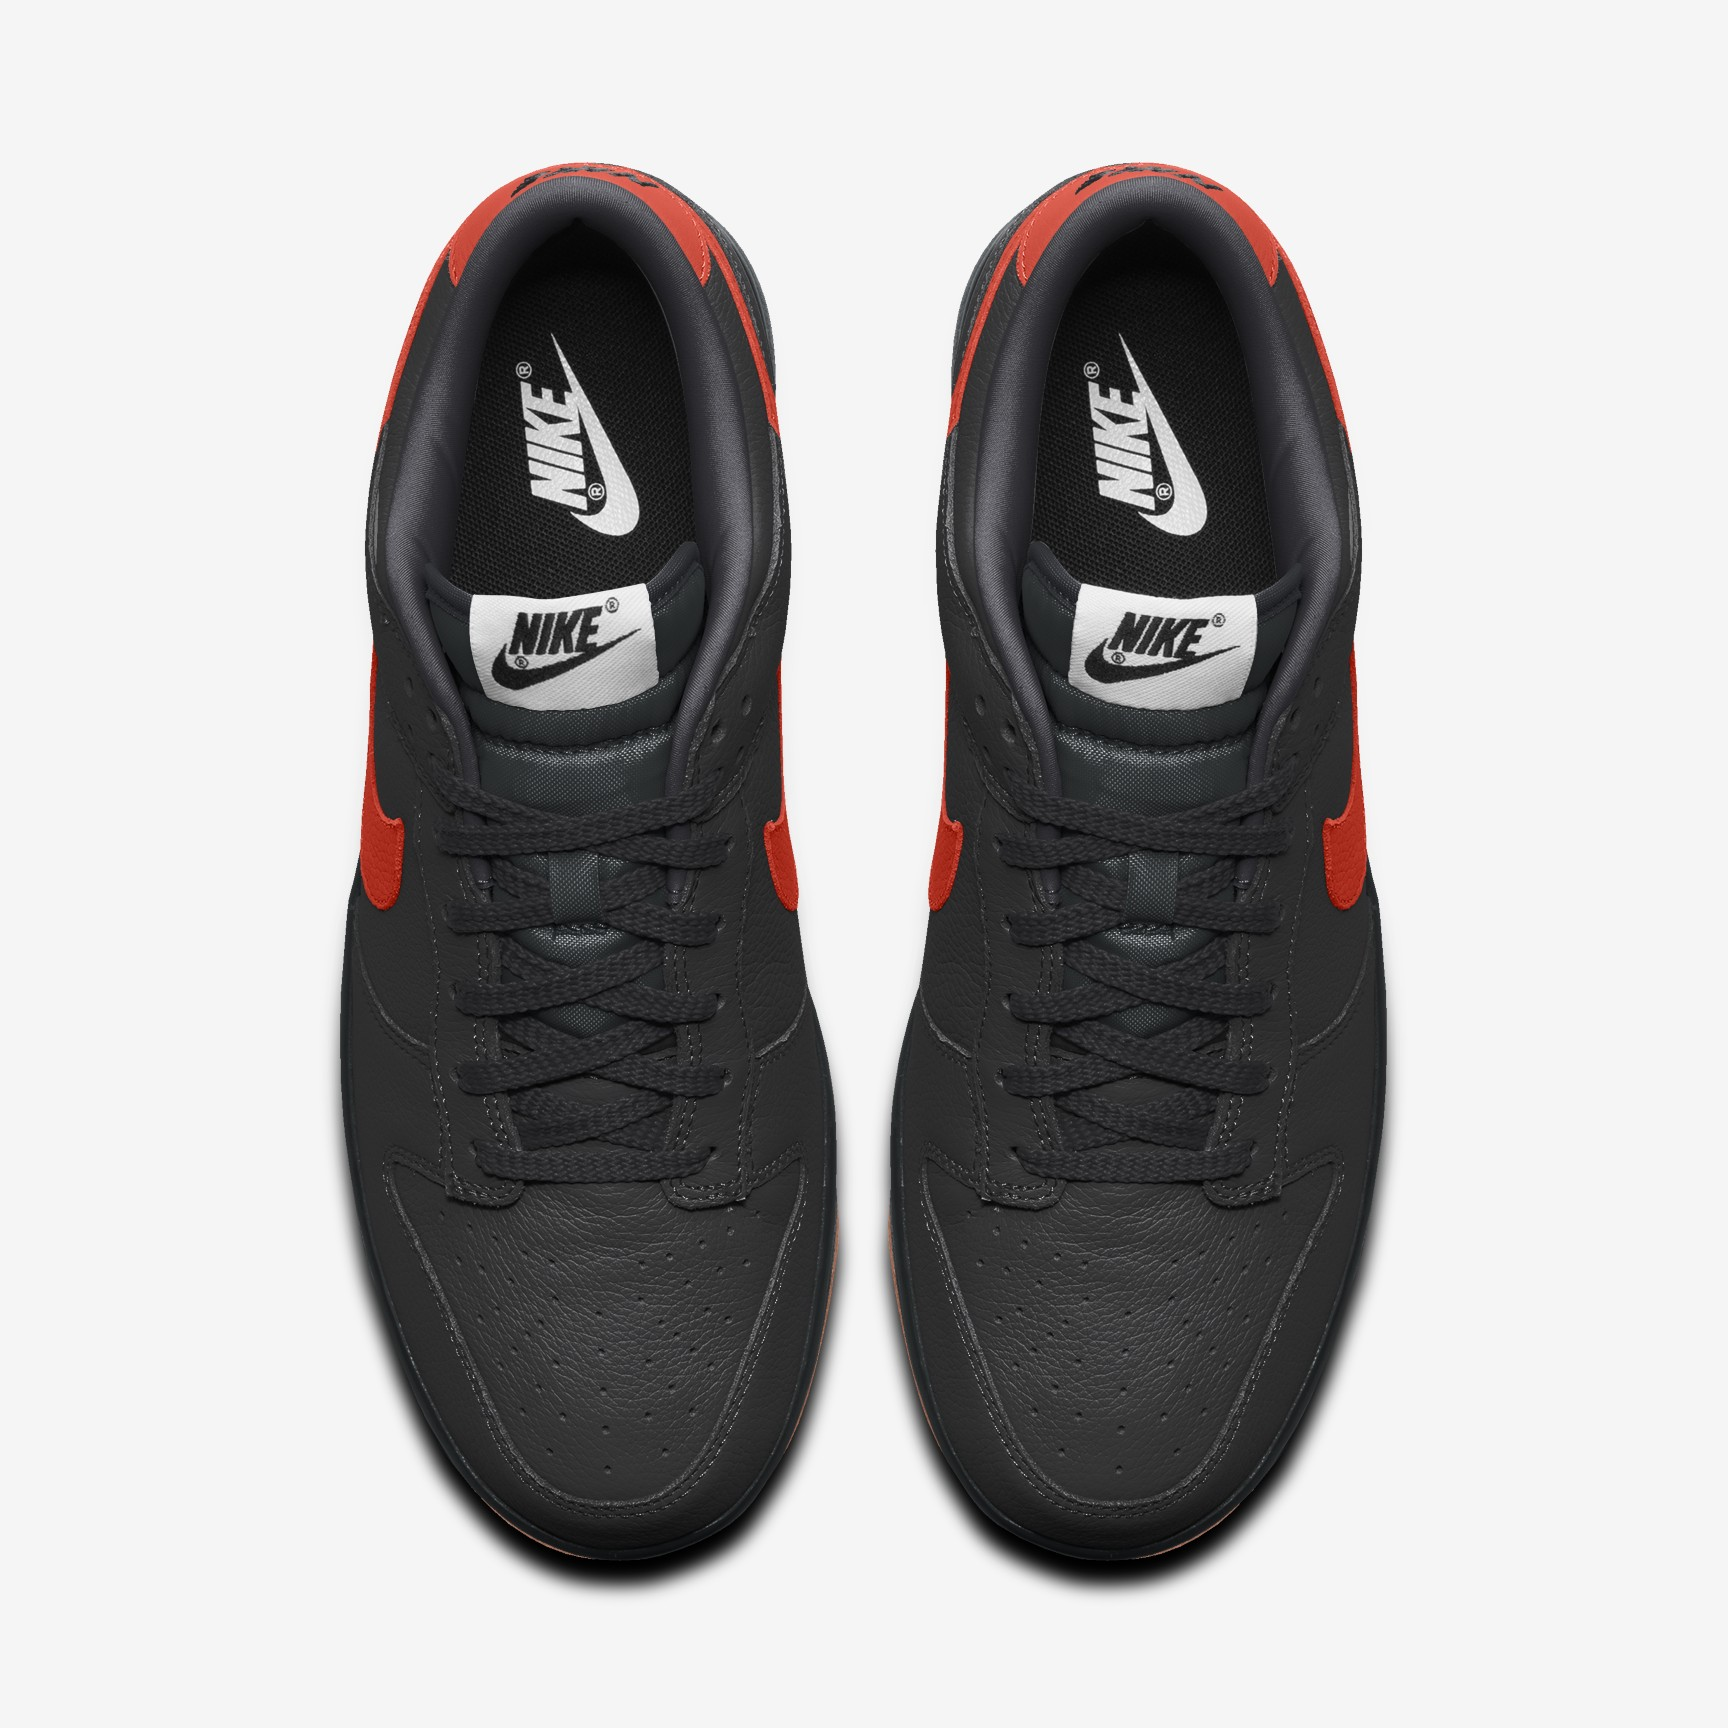 nike-dunk-low-365-by-you-ah7979-992-release-20210108-review